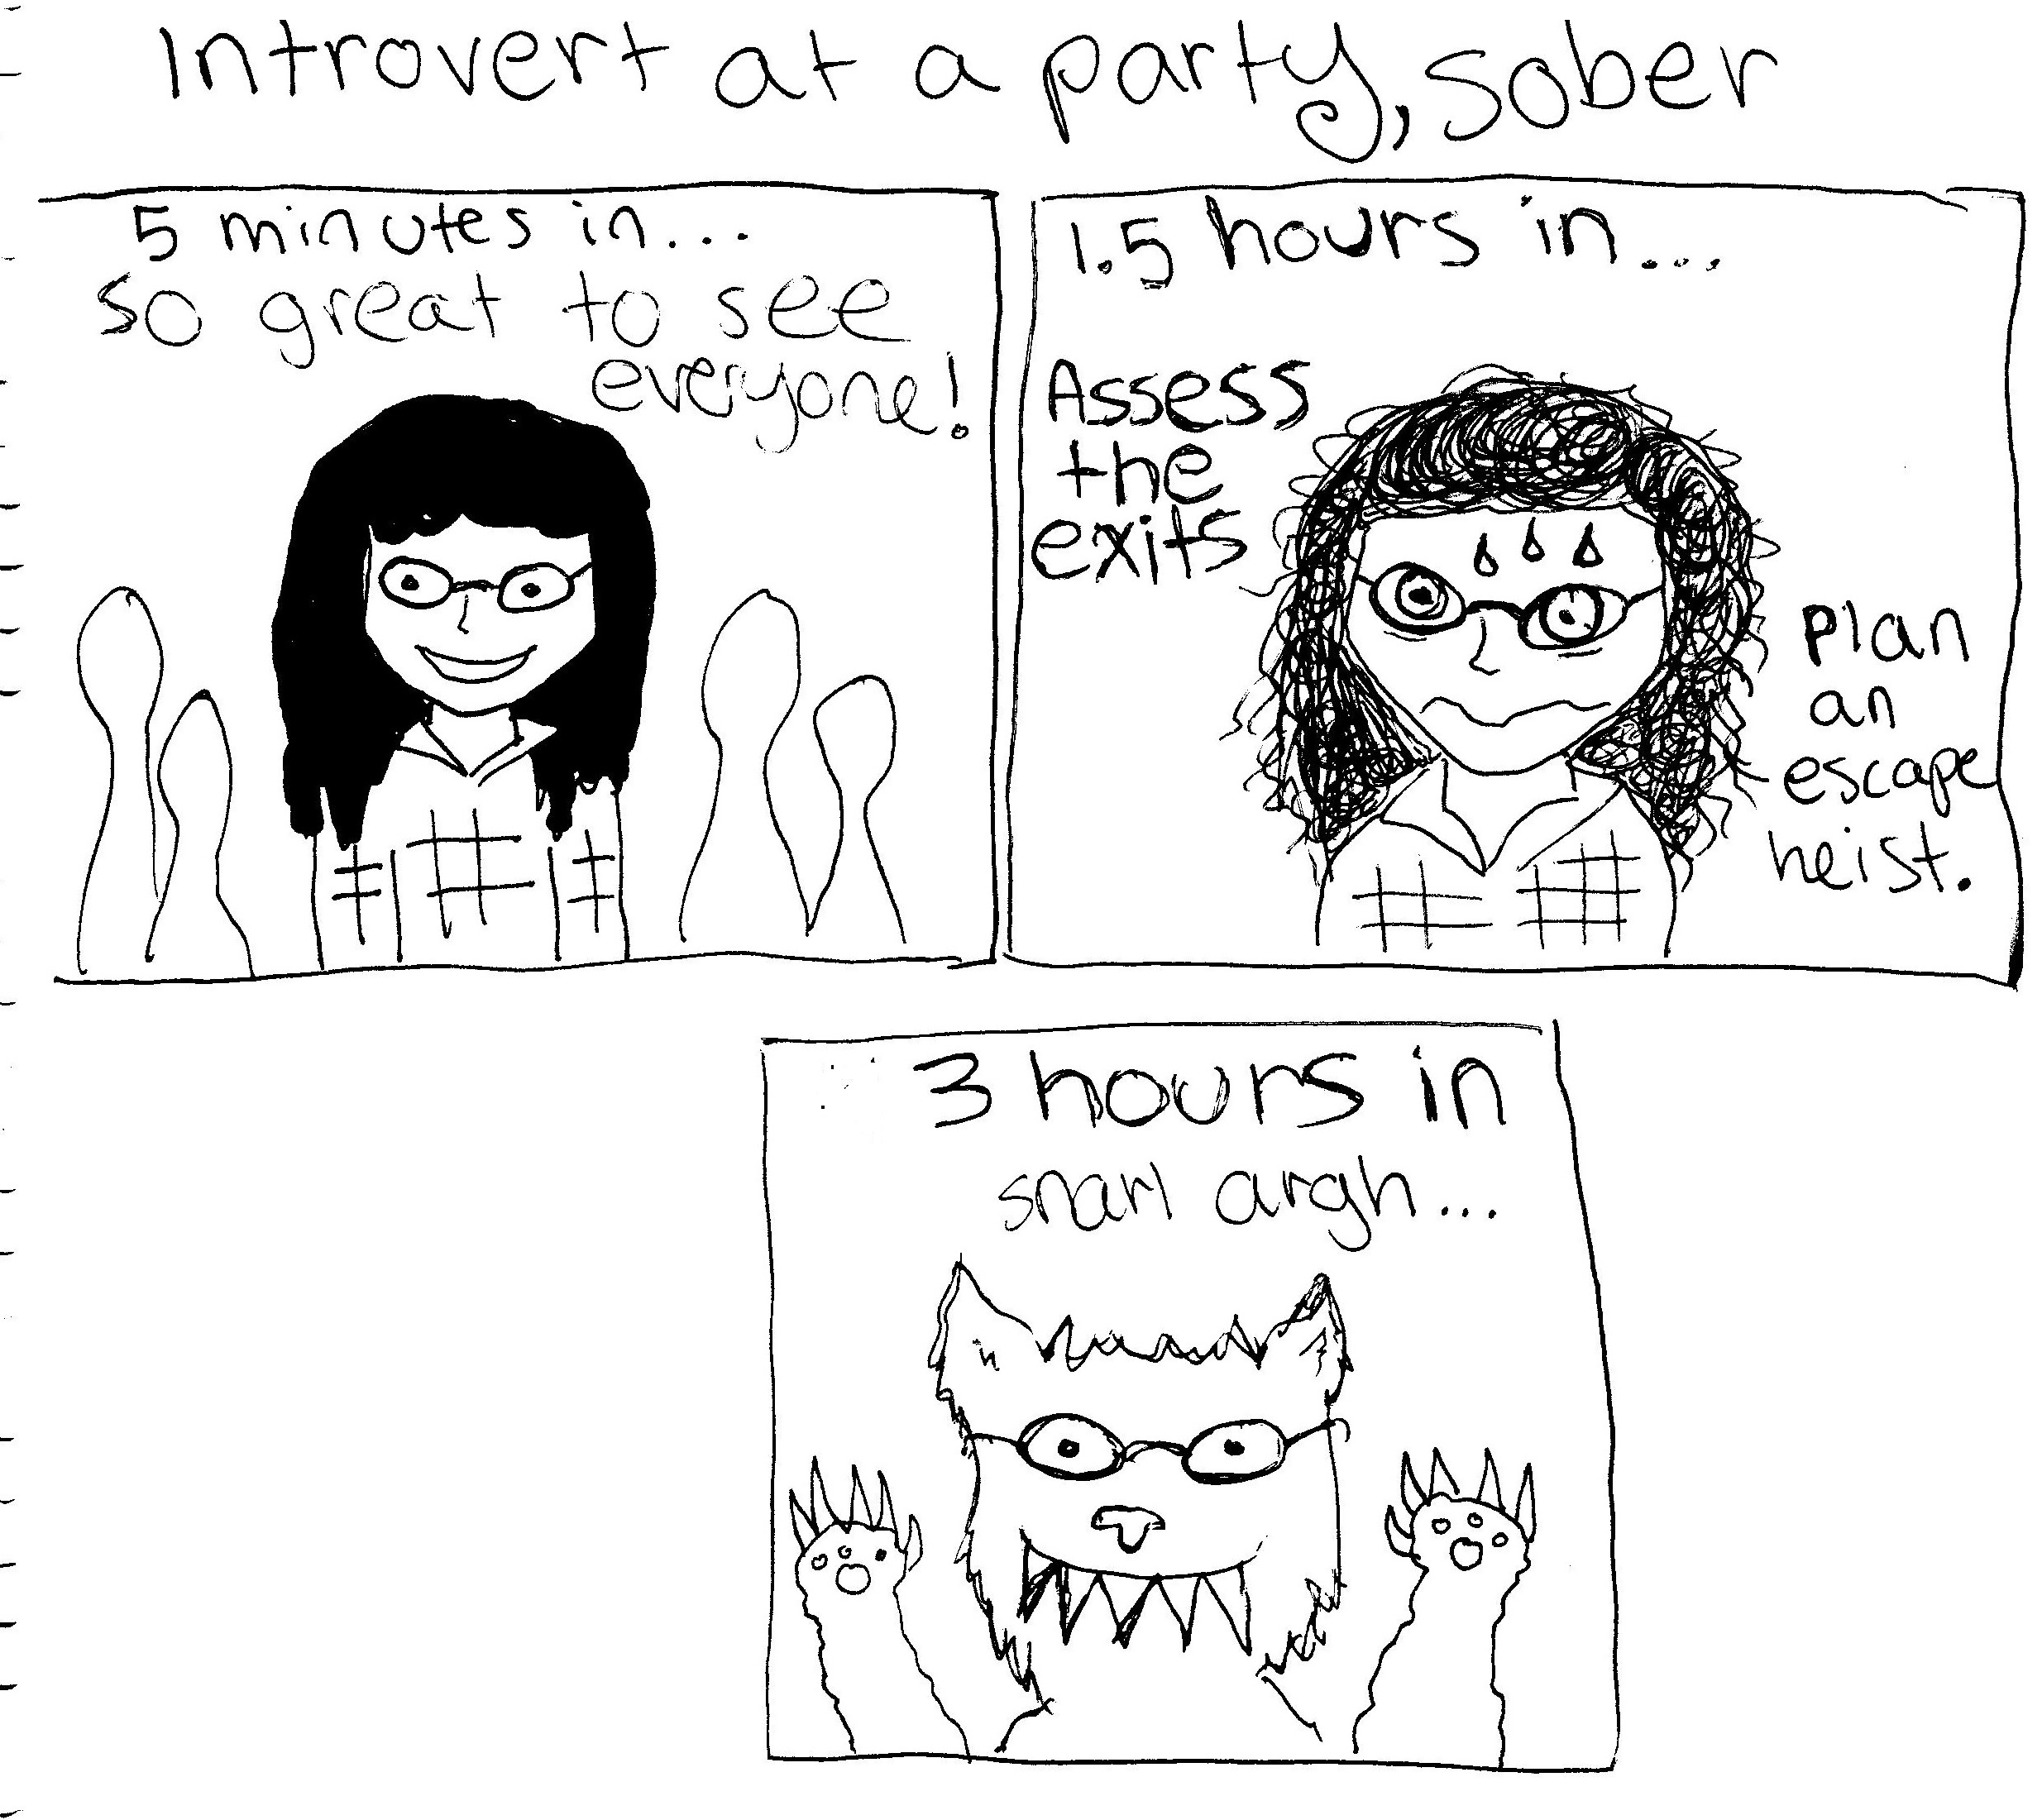 Introvert at a party not drinking